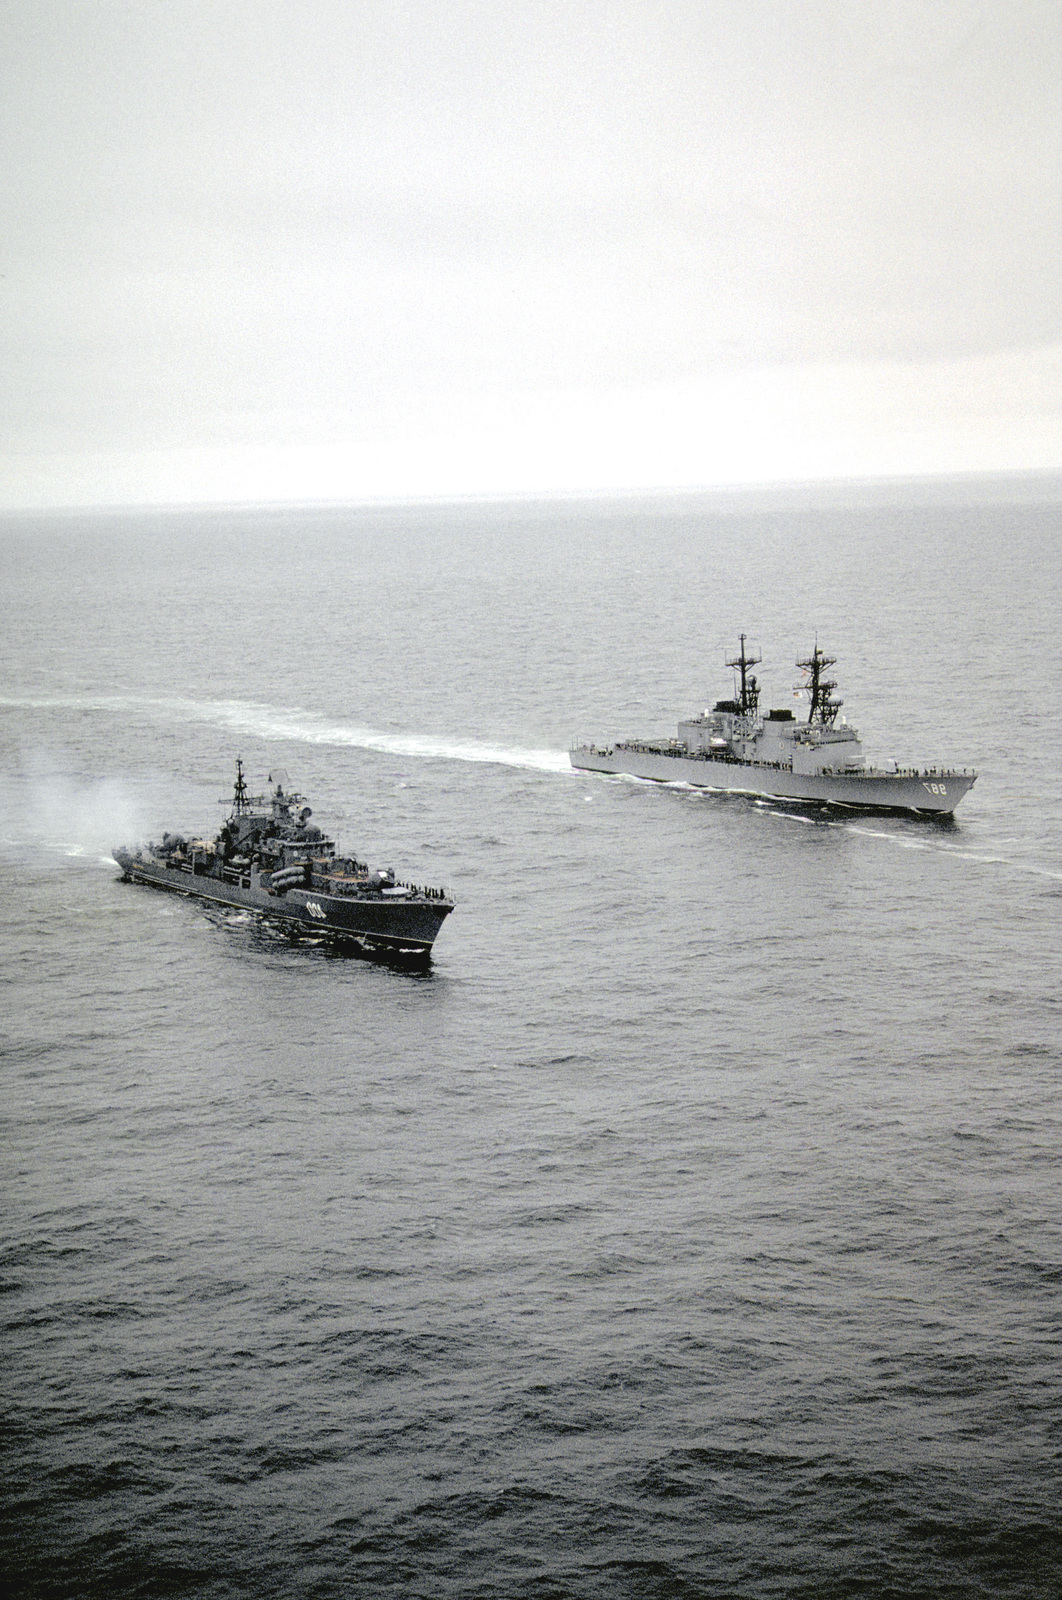 With the crews of both ships manning the rails in the naval tradition of rendering passing honors, the destroyer USS O'BANNON (DD-987) steams alongside the Russian Sovremenny class destroyer RASTOROPNNY (EM-400) while heading for the Russian city of Severomorsk